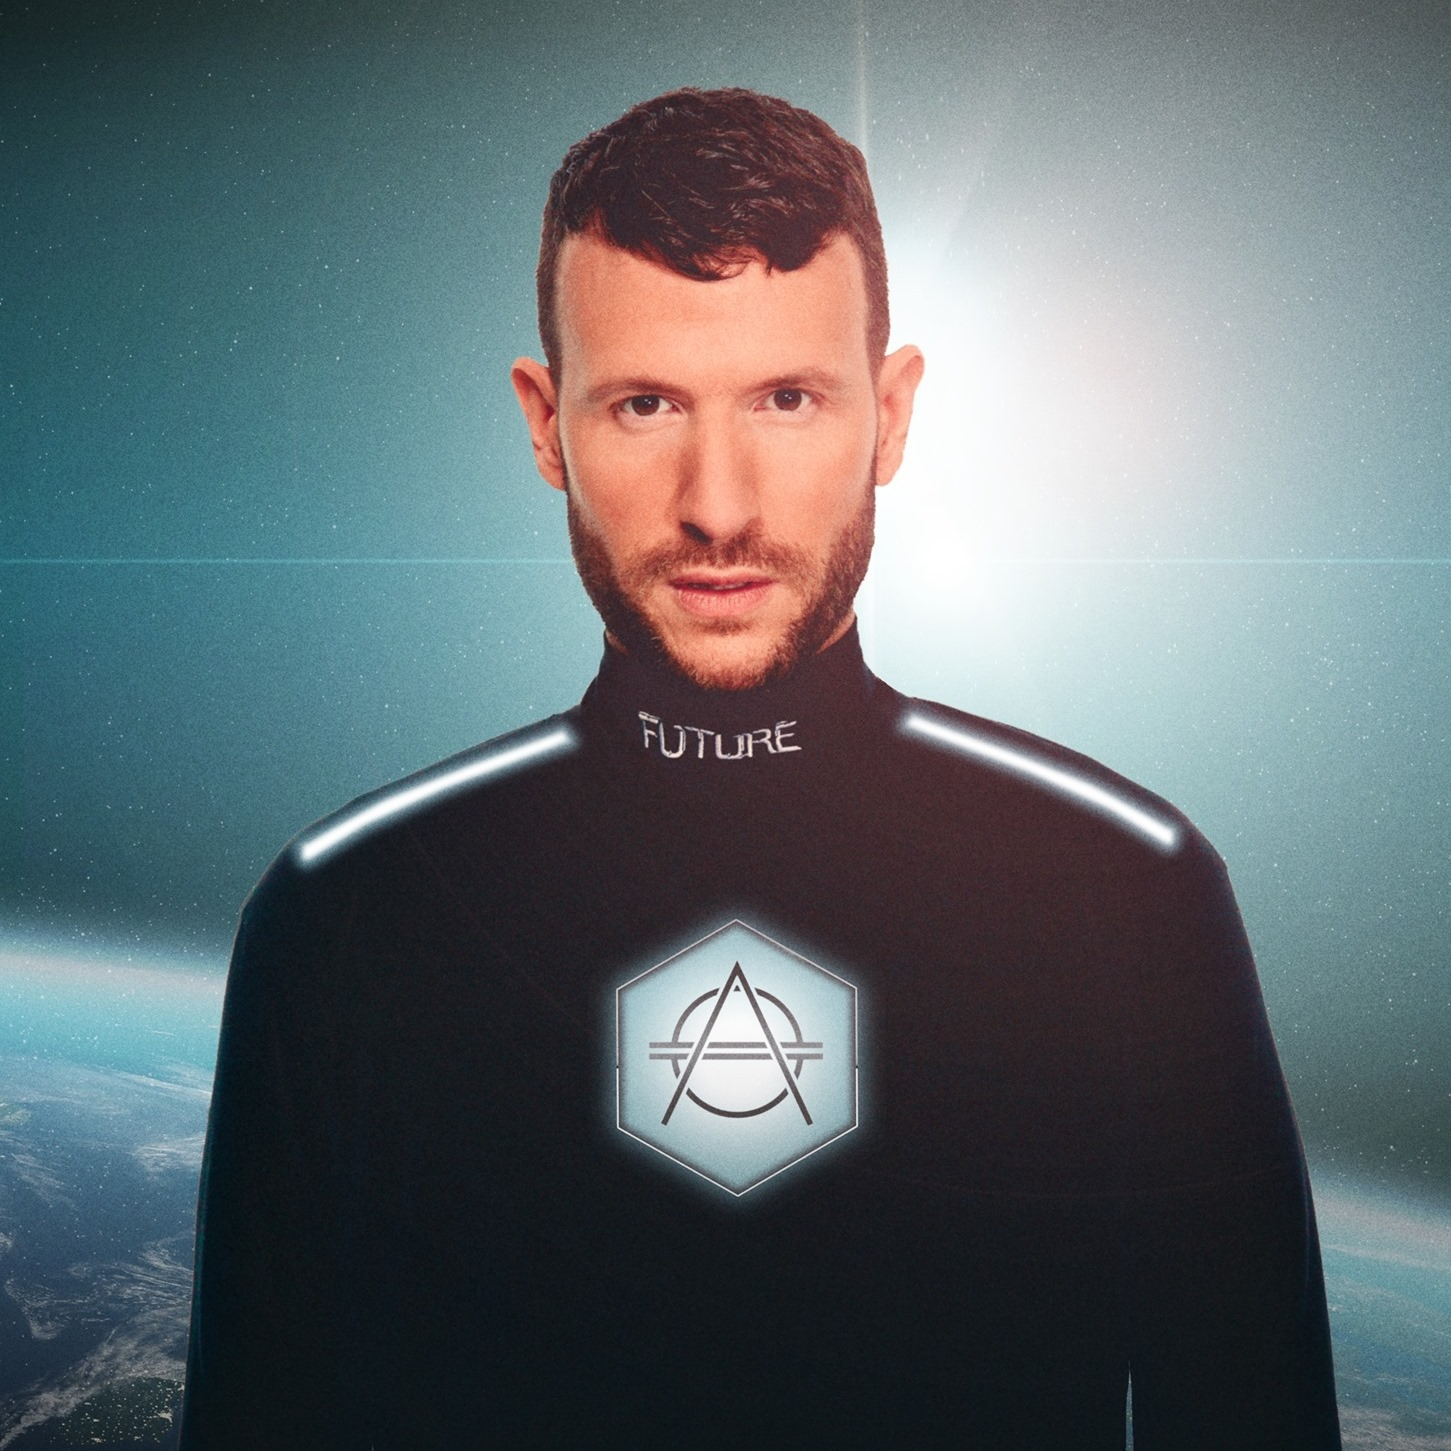 【オススメEDM】Don Diablo ft. KiFi の The Same Way